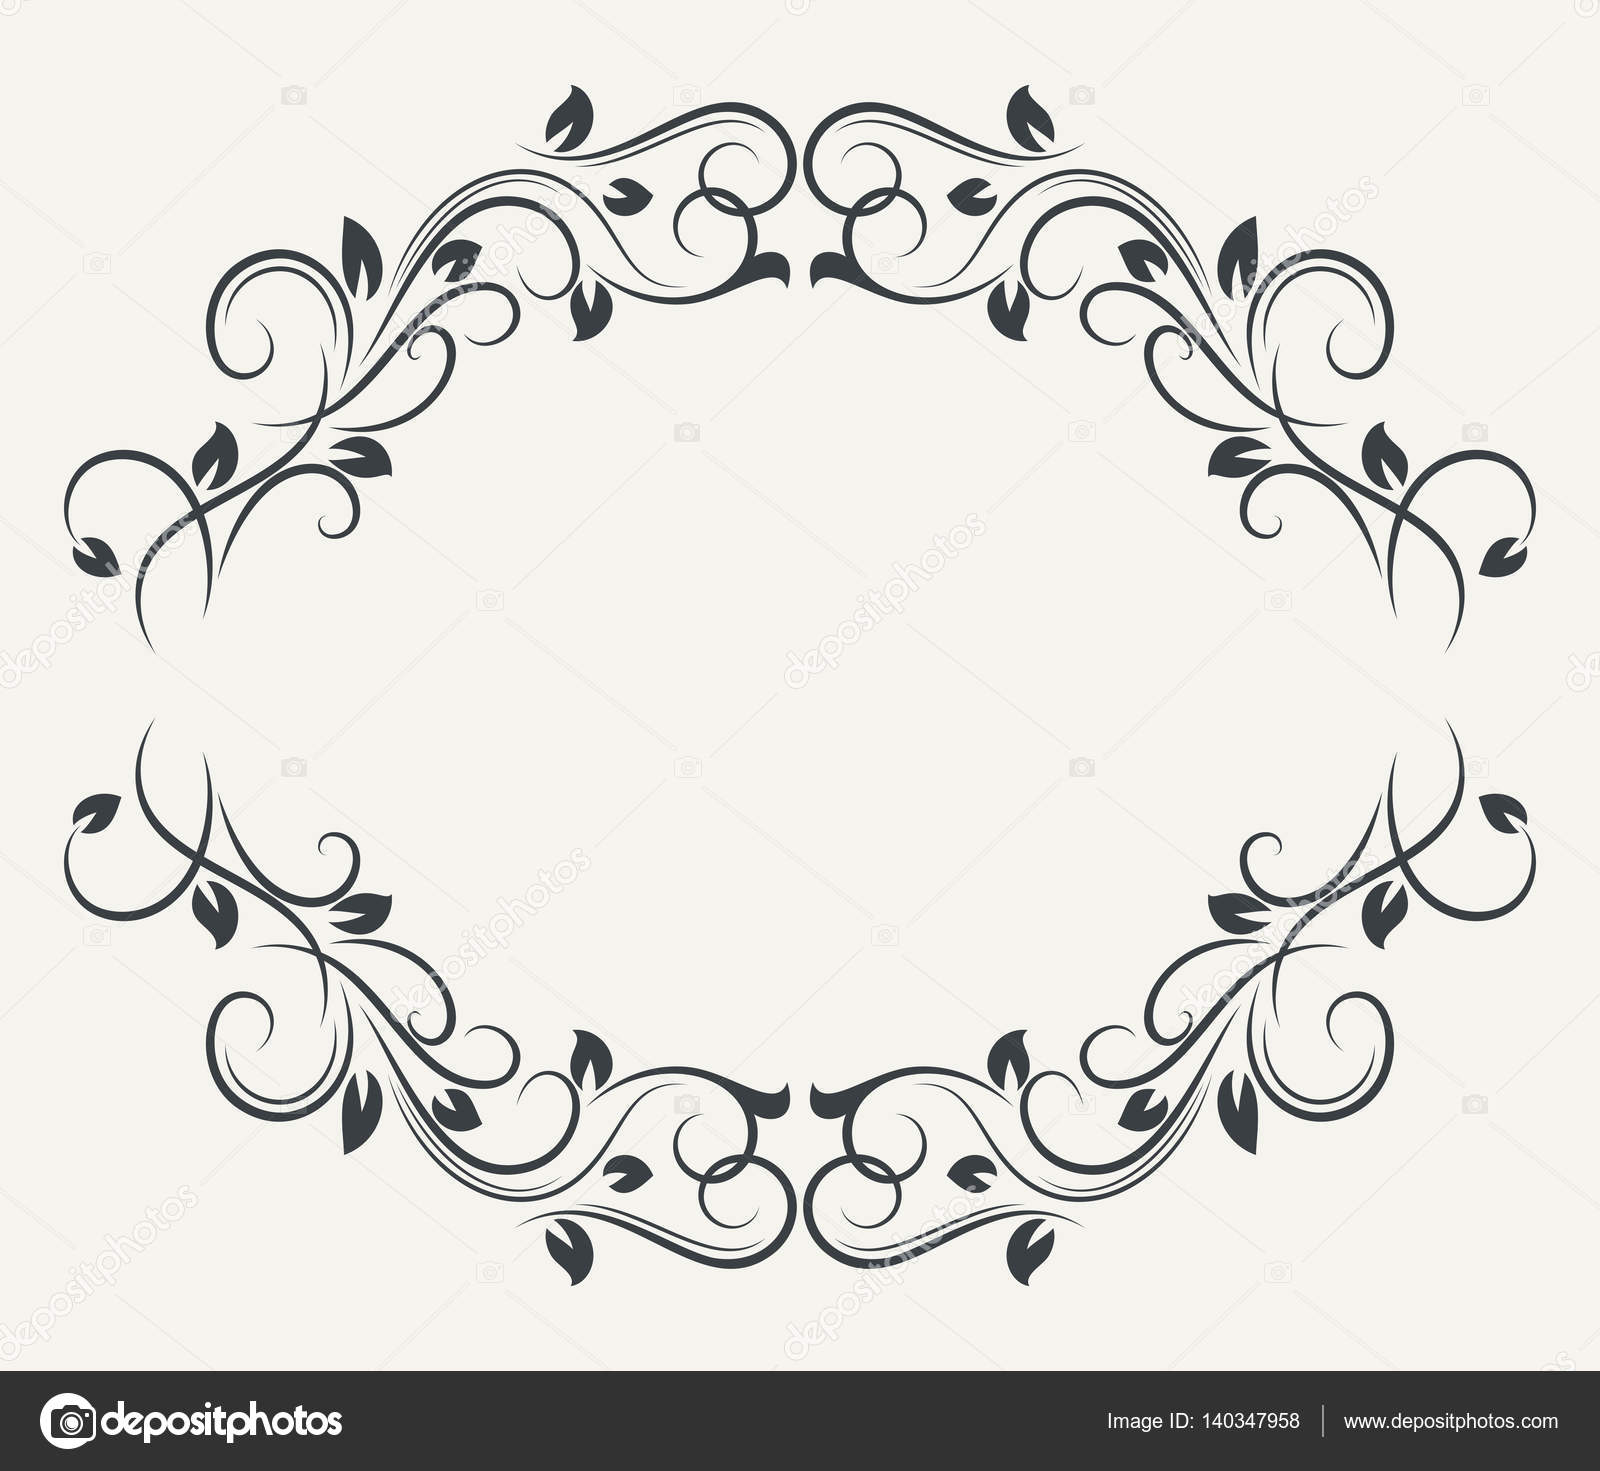 Black and white floral frame — Stock Vector © lenapix #140347958